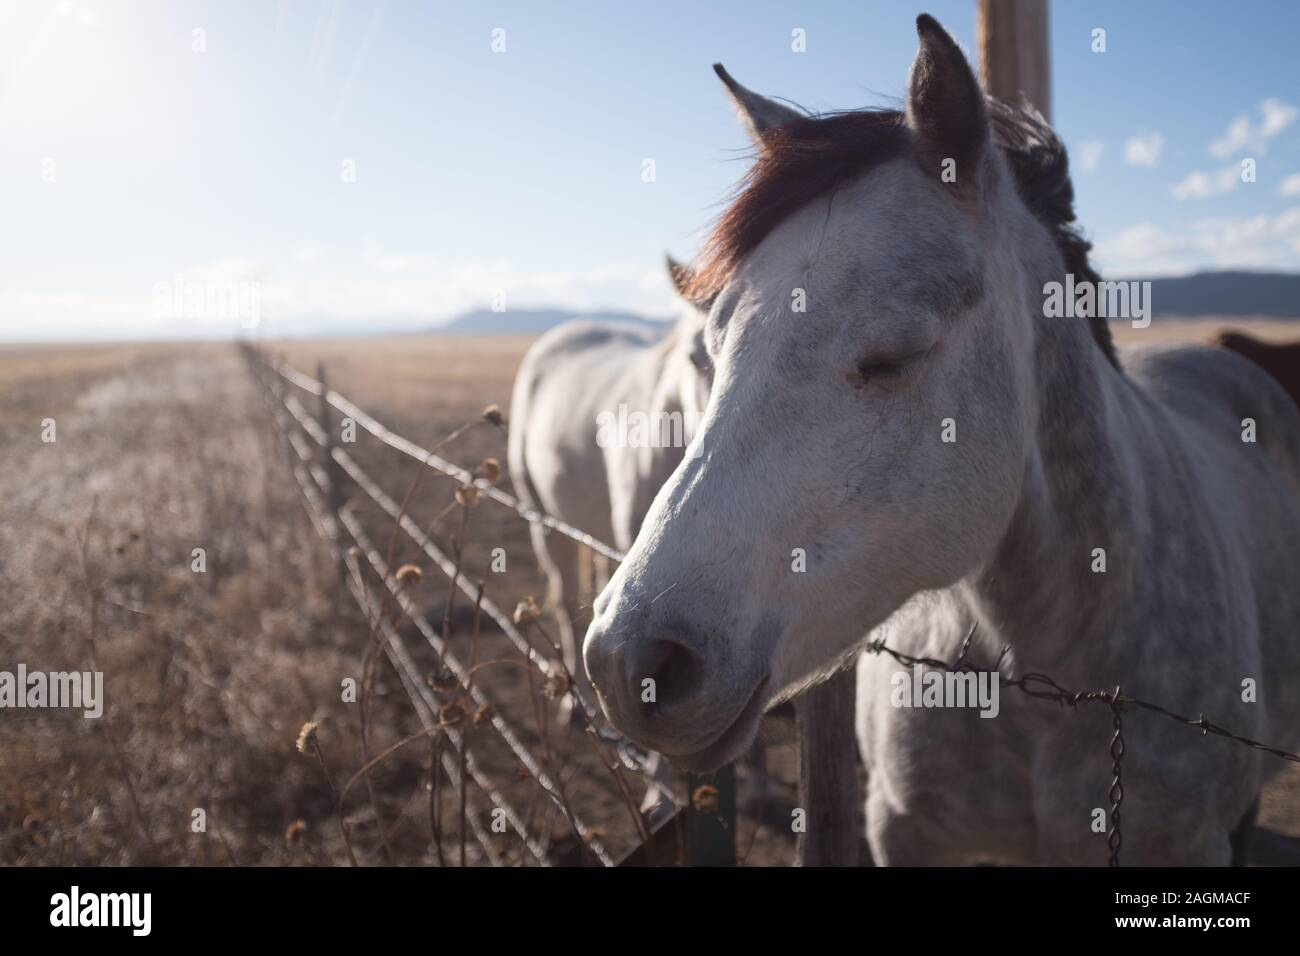 A Closeup Shot Of A Cute White Horse With Closed Eyes On The Countryside Stock Photo Alamy